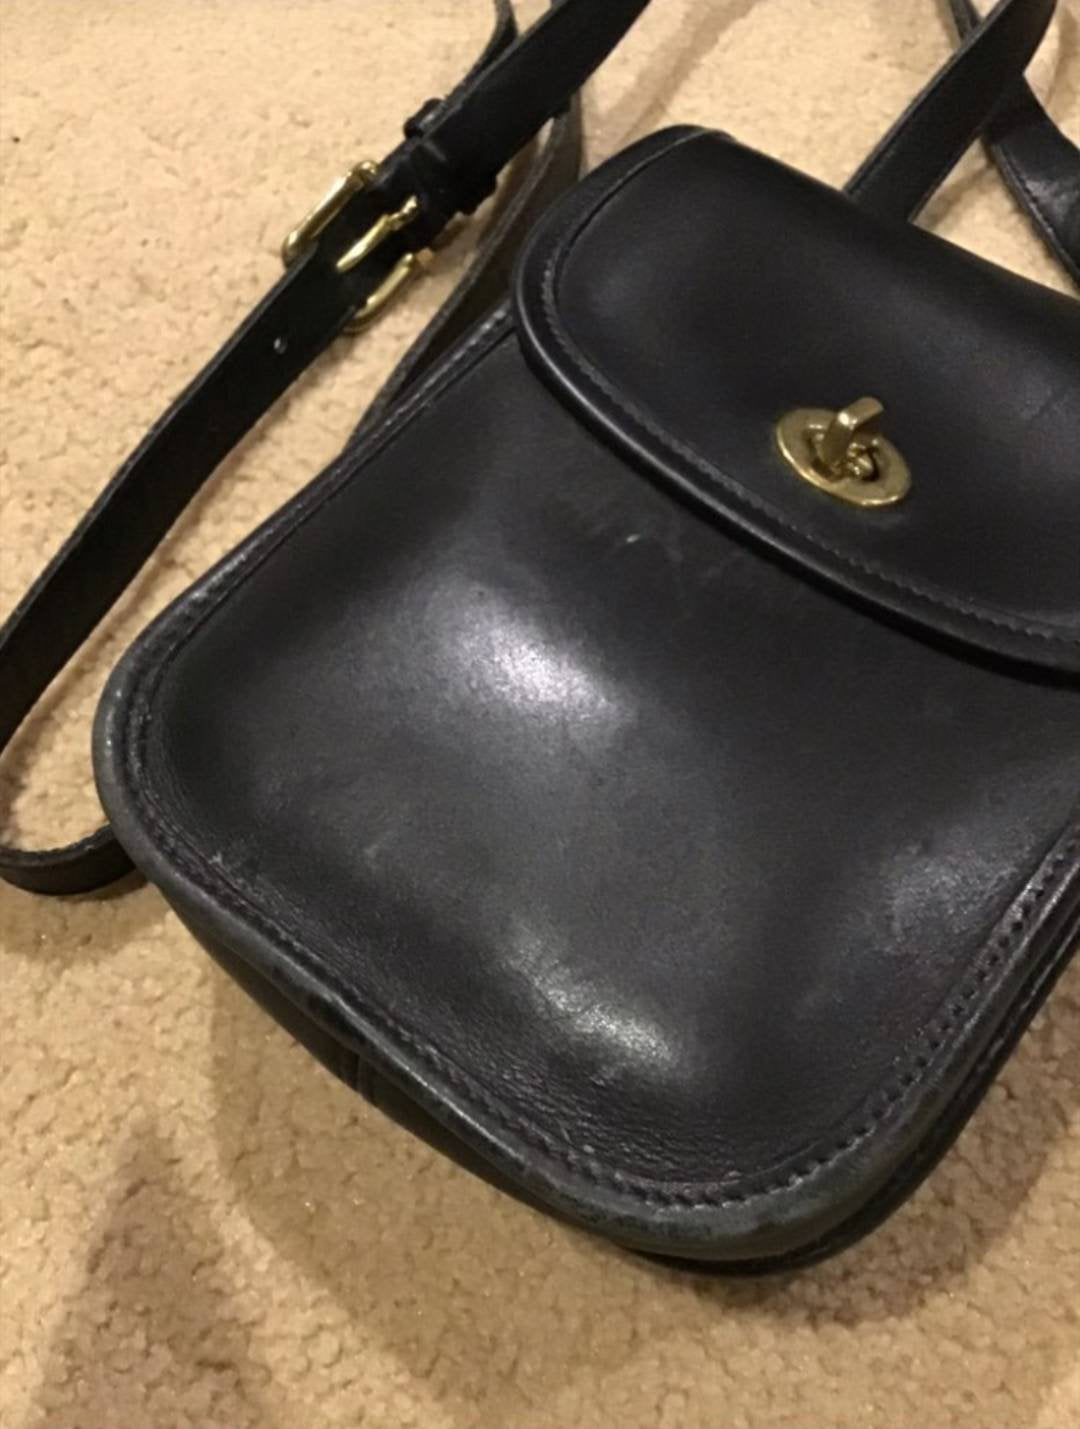 VINTAGE COACH CROSSBODY black leather bag purse cross body